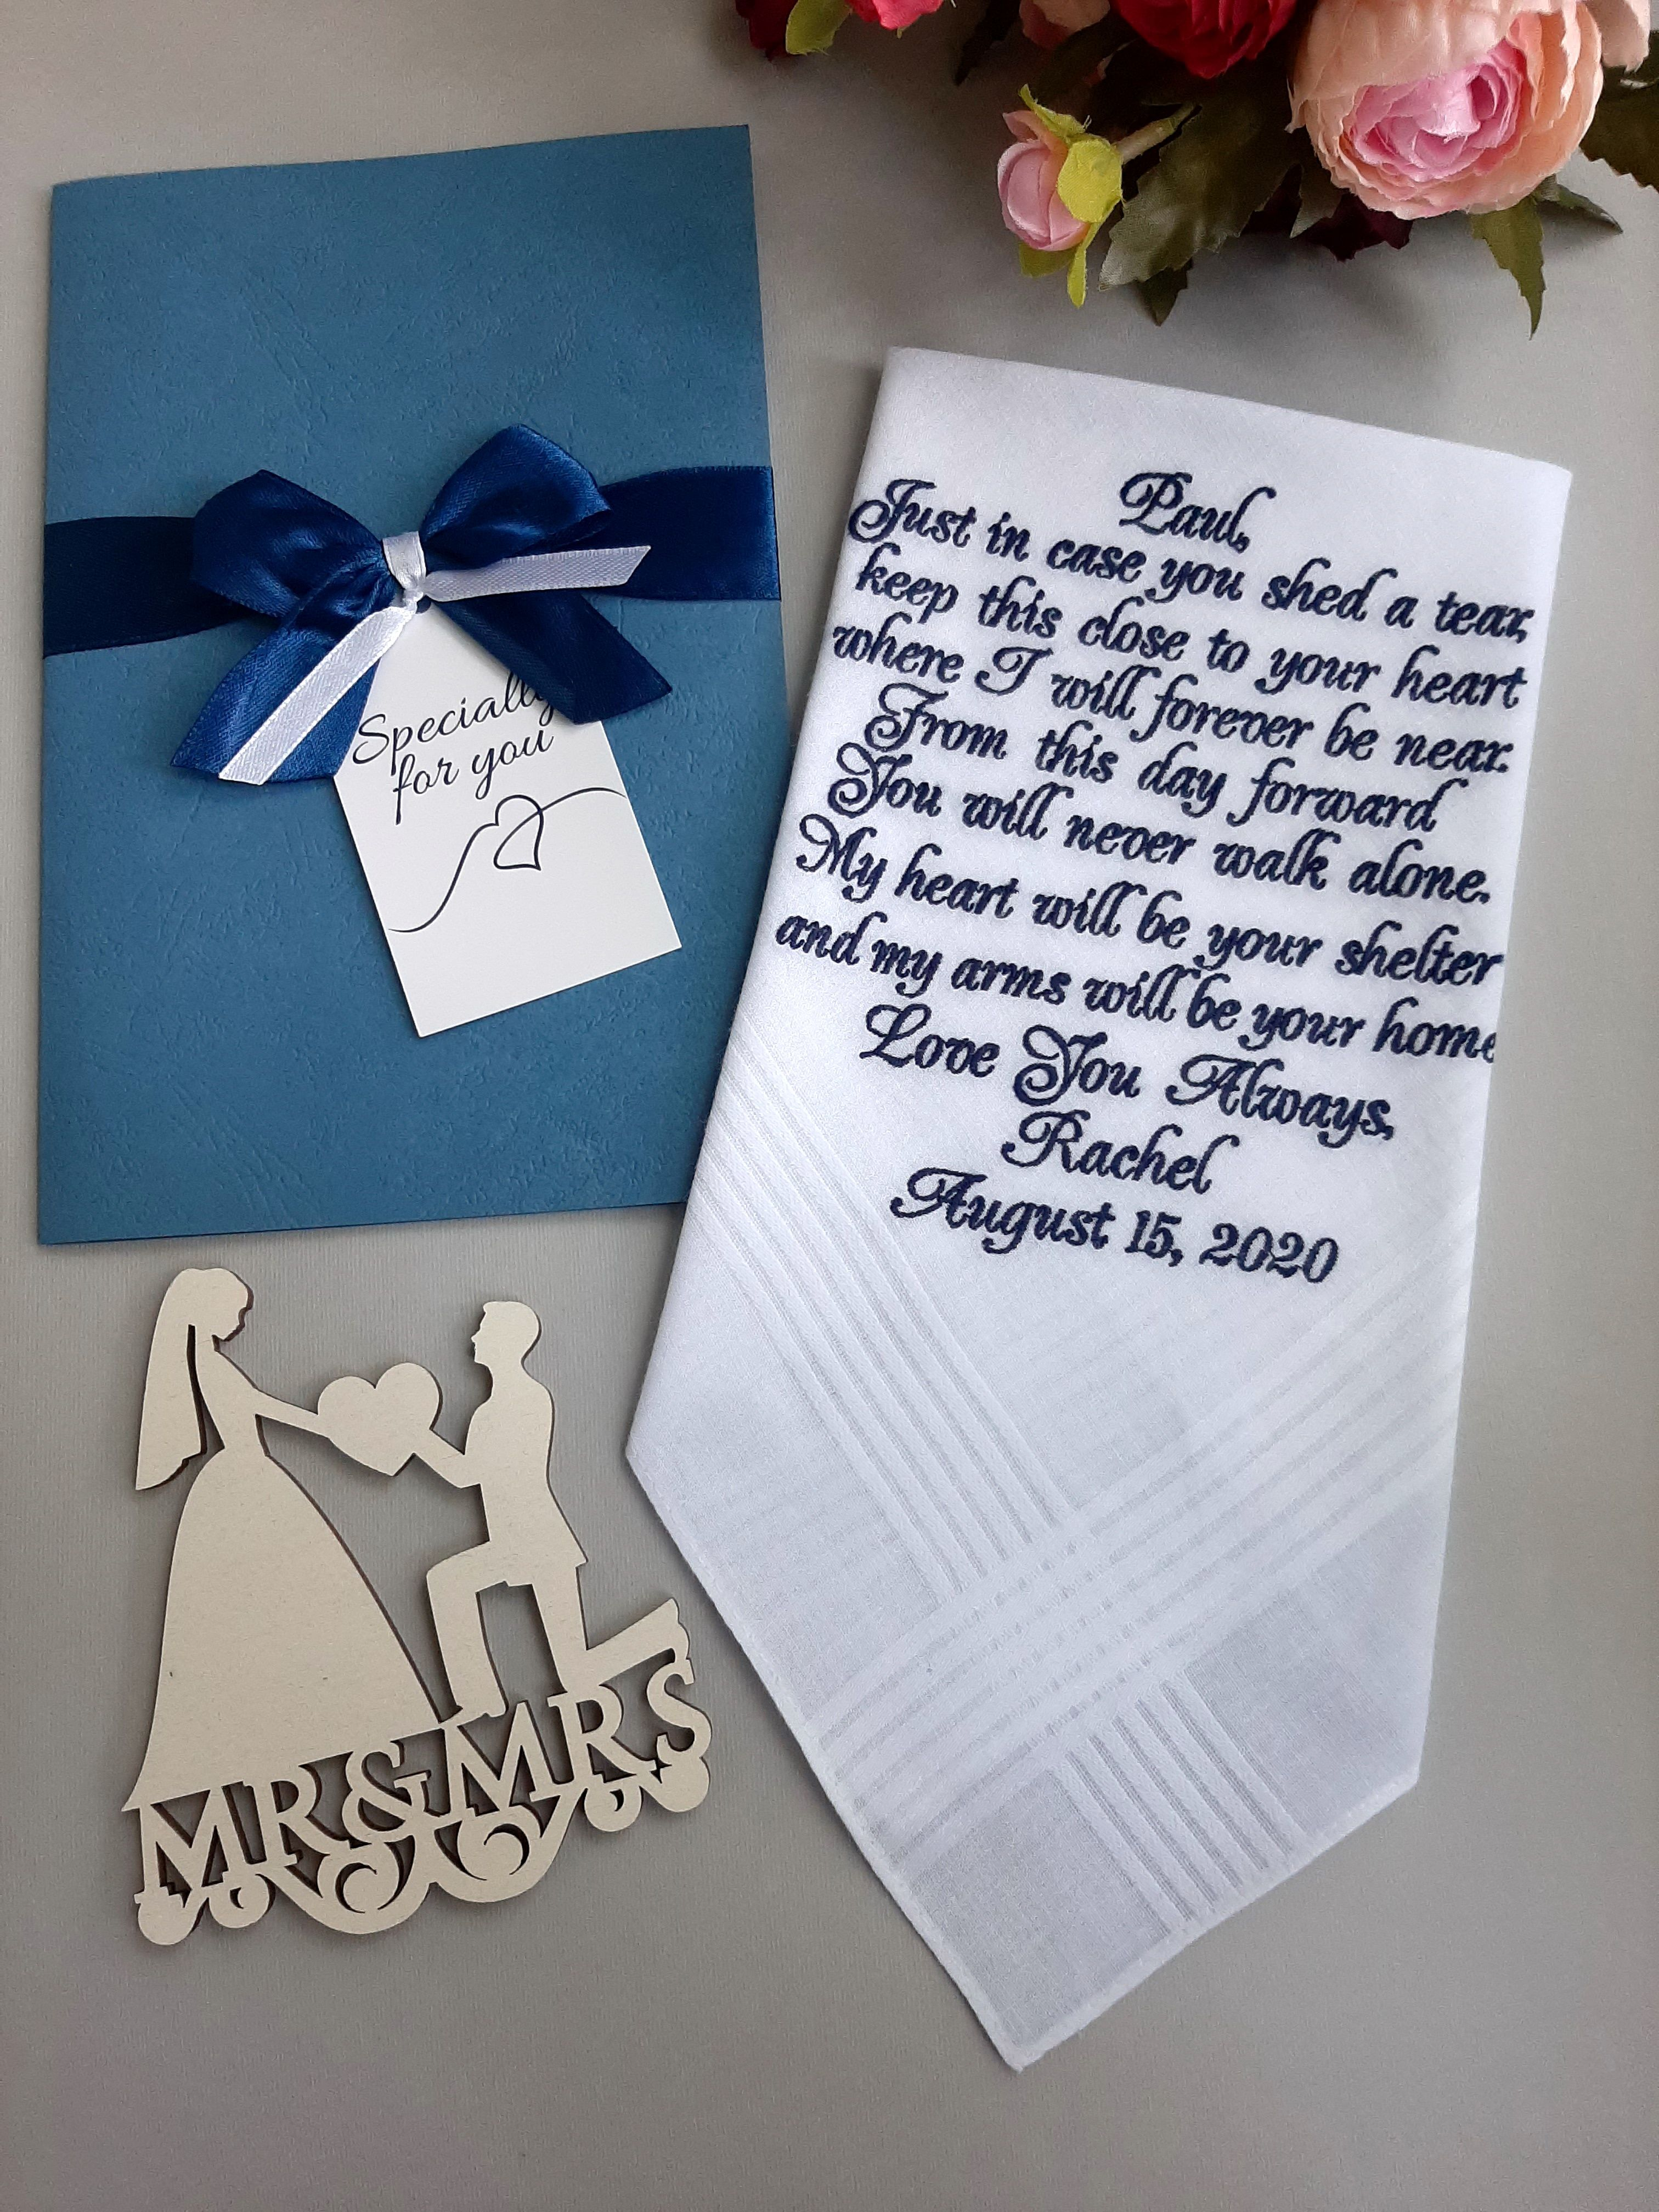 Wedding Hankerchief FREE Gift Cases Favors Mother of the Groom Accessories Gifts Wedding Handkerchief PRINTED From Bride Gift